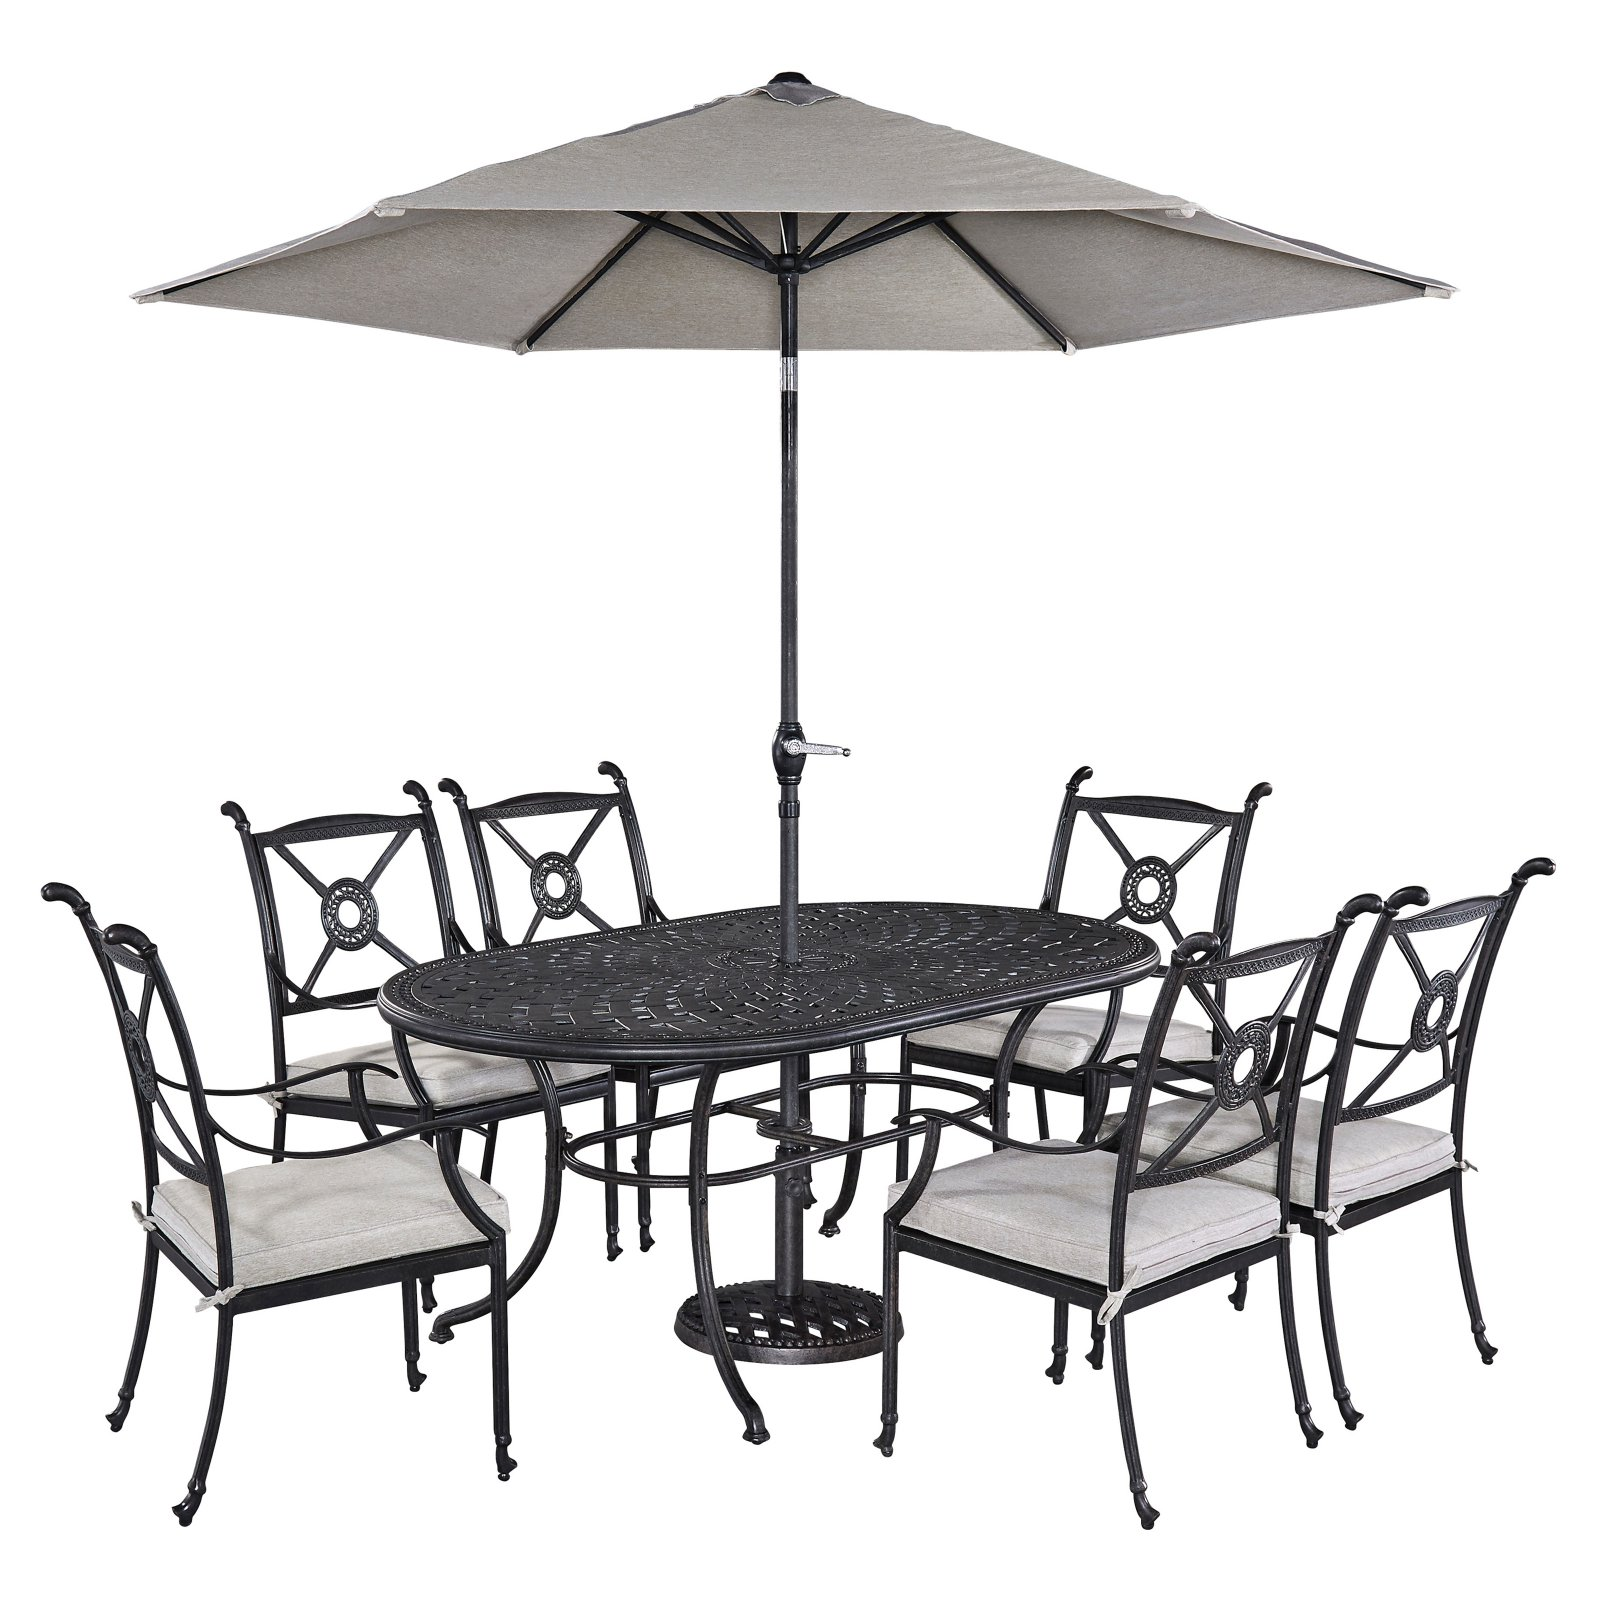 Home Styles Athens 7pc Dining Set with Oval Dining Table and 6 Arm Chairs